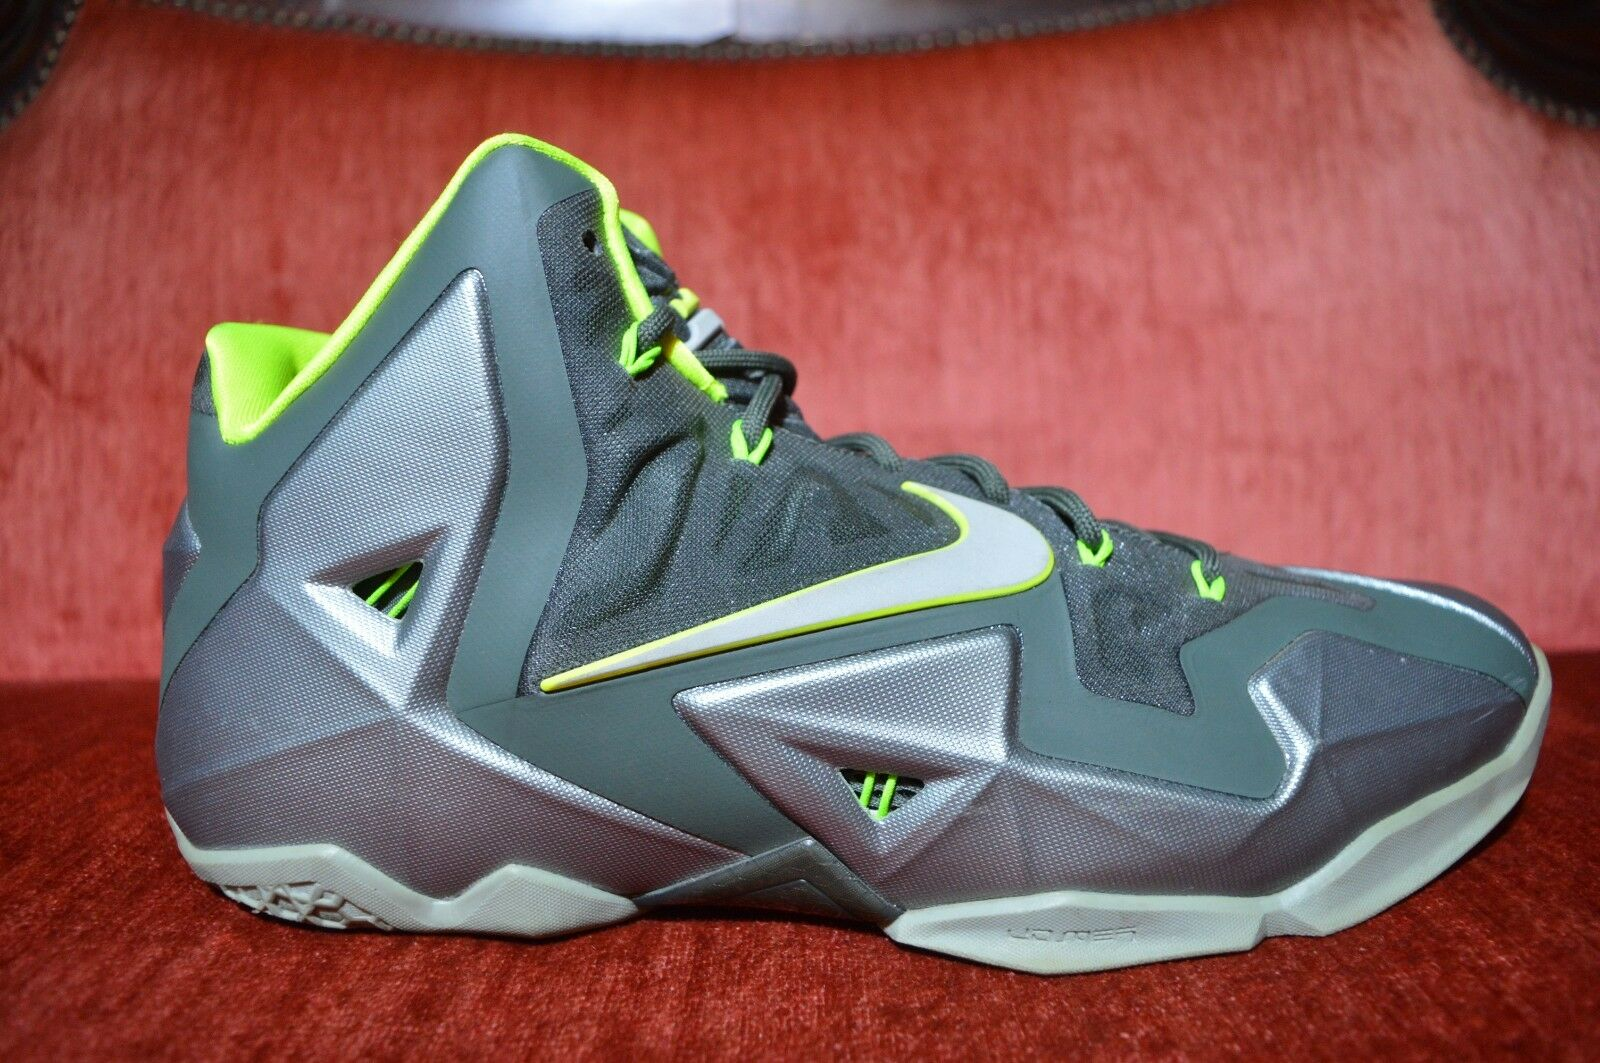 CLEAN NIKE LEBRON JAMES XI 11 DUNKMAN SIZE 11 MEN'S BASKETBALL SHOES 616175-300